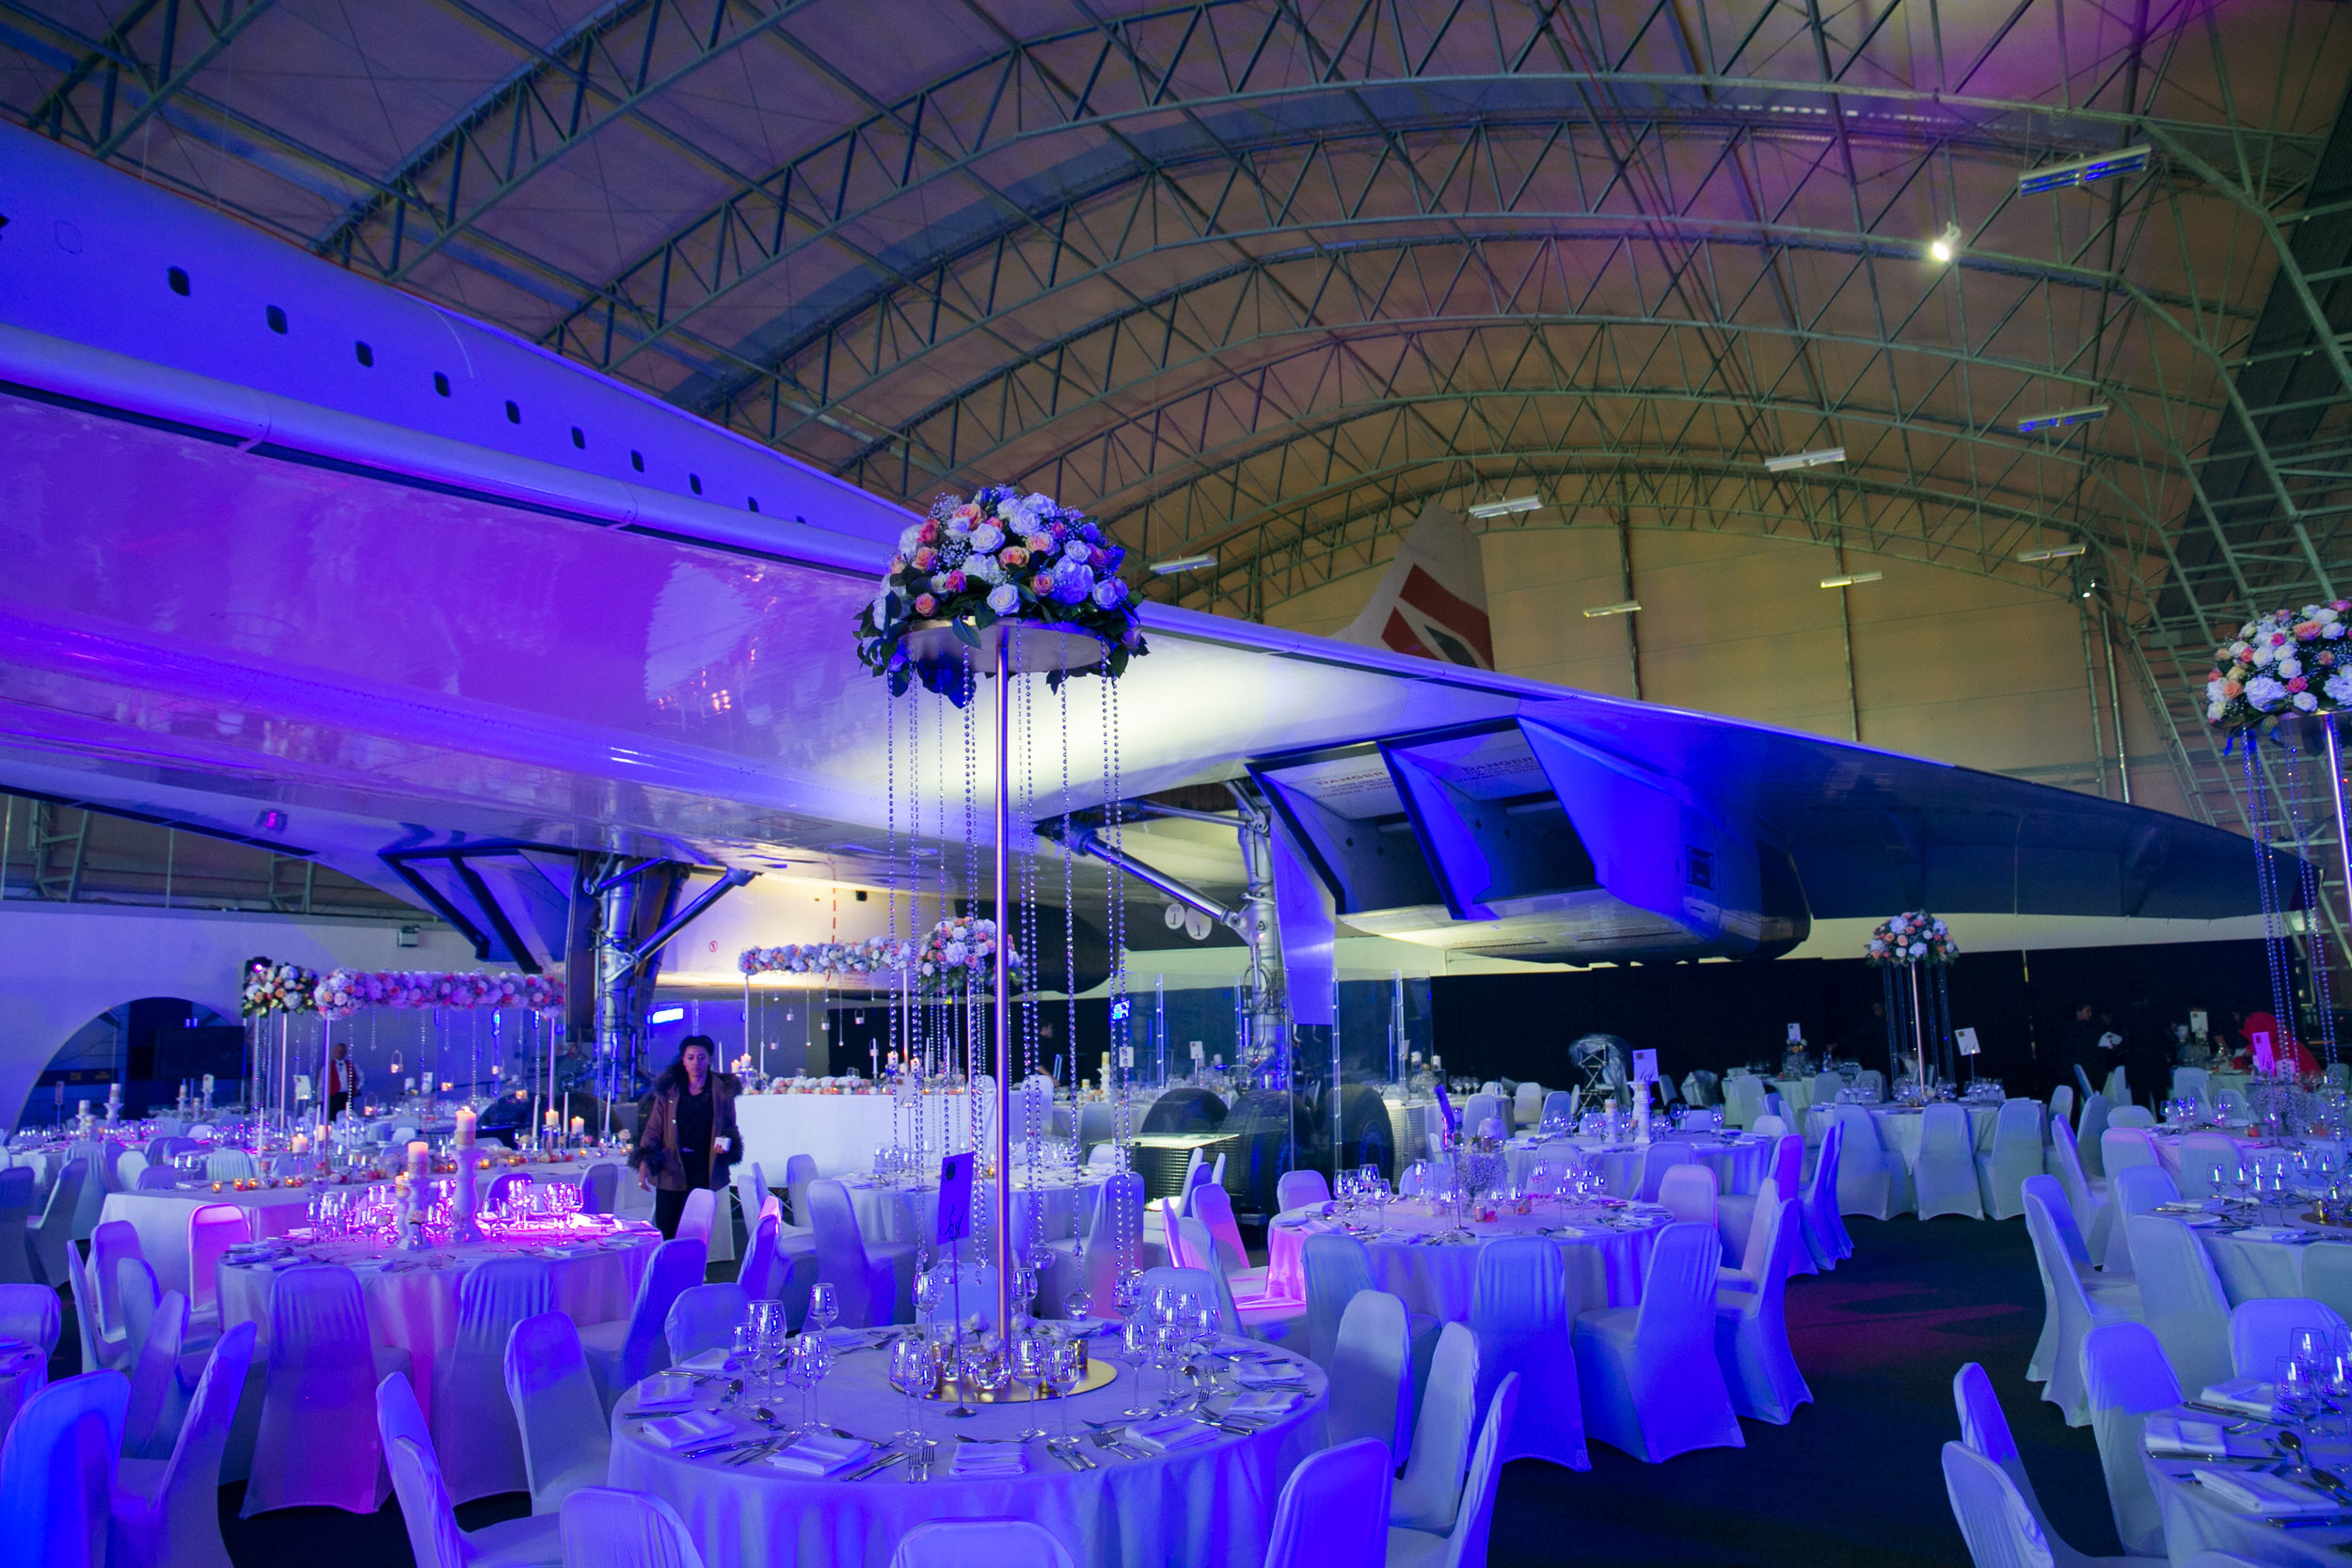 An incredible venue in Manchester that we covered - That's a real Concorde!